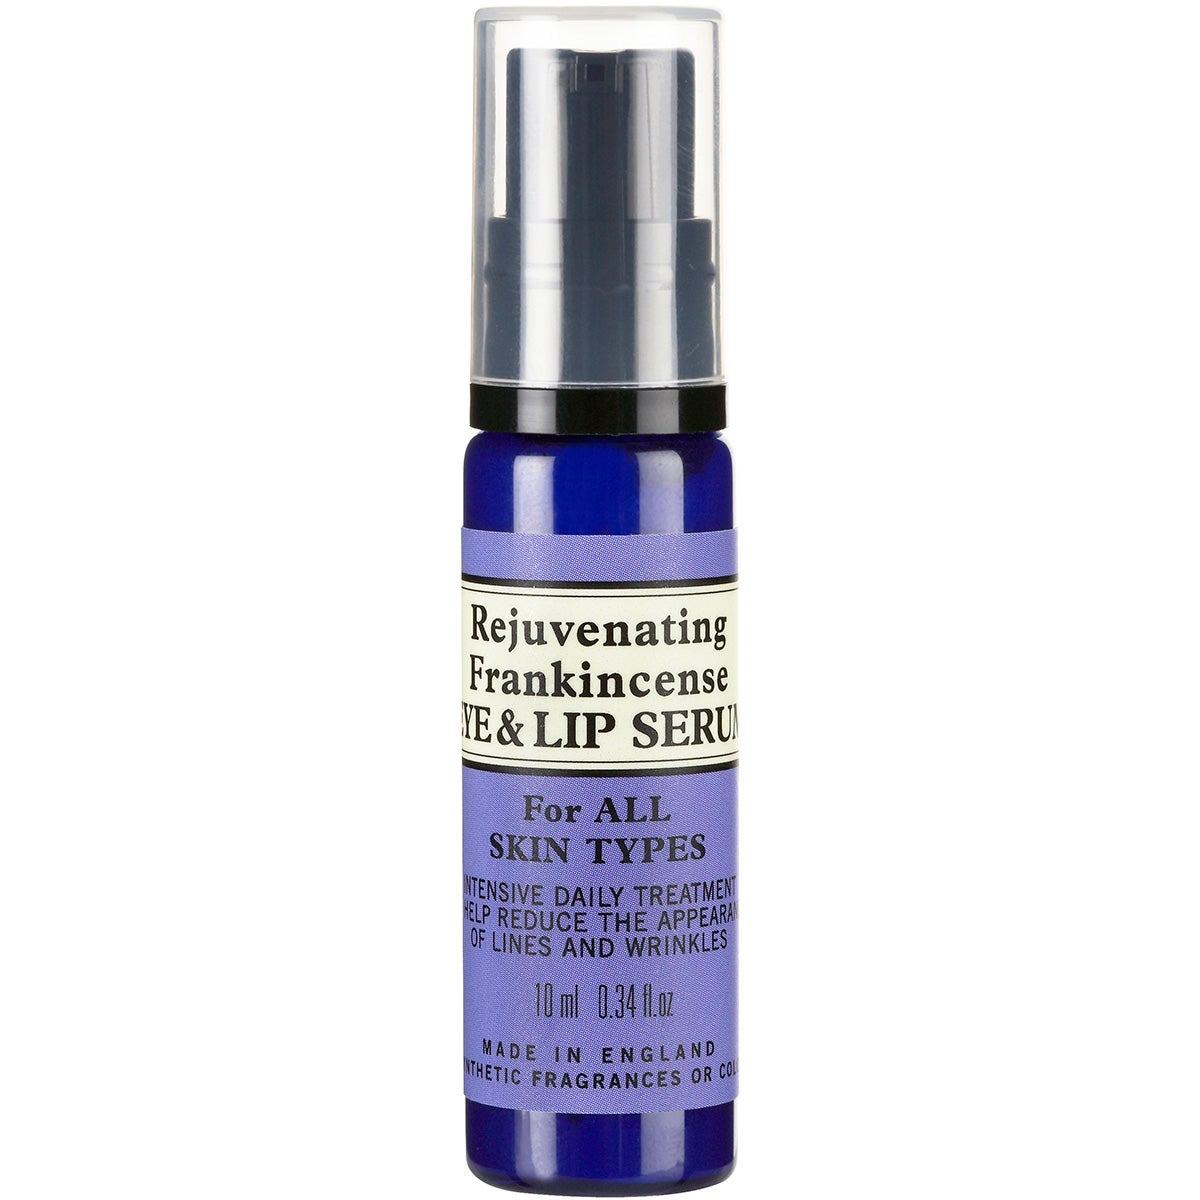 Neal's Yard Remedies Rejuvenating Frankincense Eye & Lip Serum